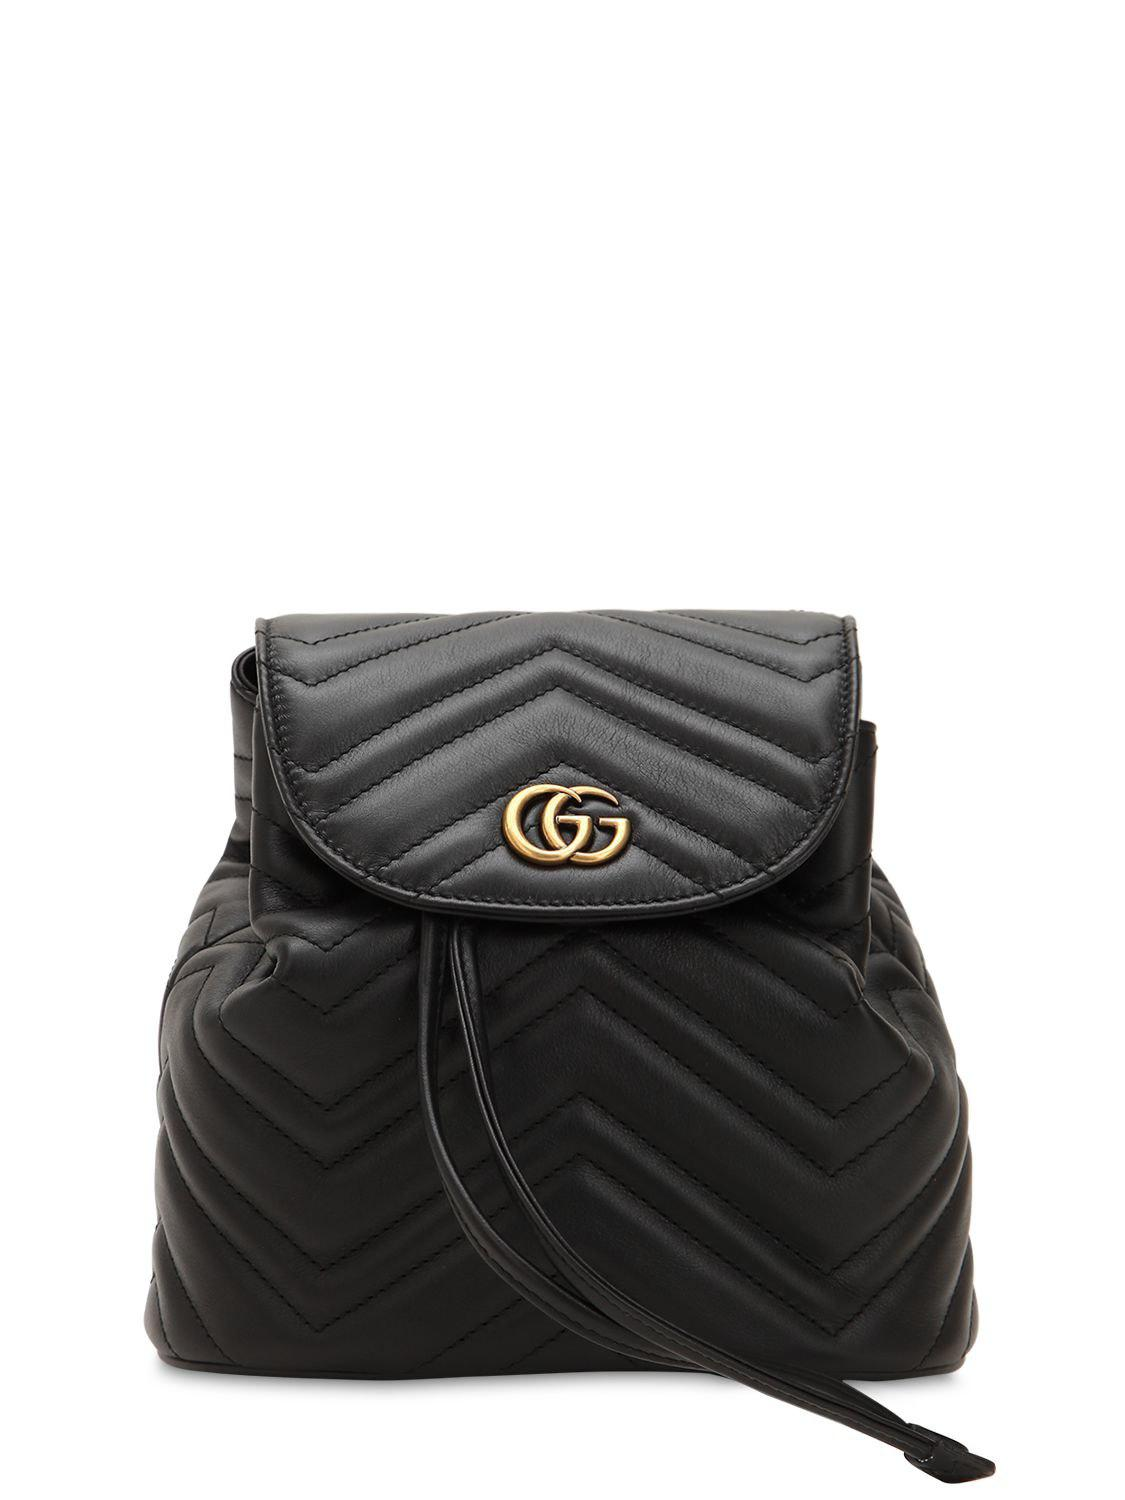 994680fa1ed Gucci Mini Gg Marmont Leather Backpack in Black - Lyst